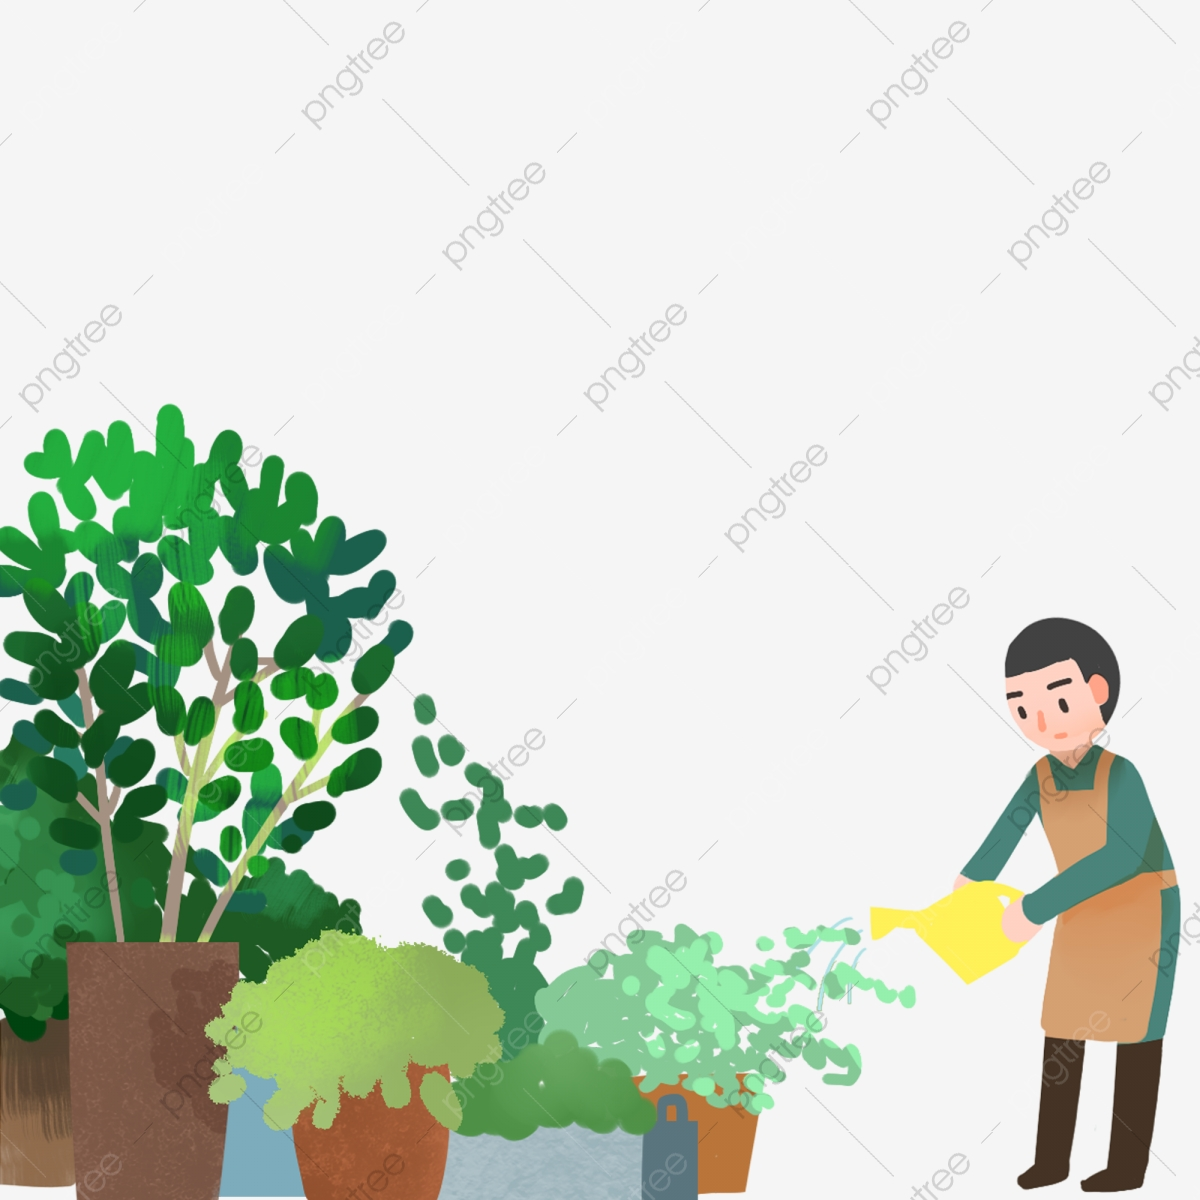 Cartoon Man Watering Work Boy Flower Pot Decoration Png Transparent Clipart Image And Psd File For Free Download